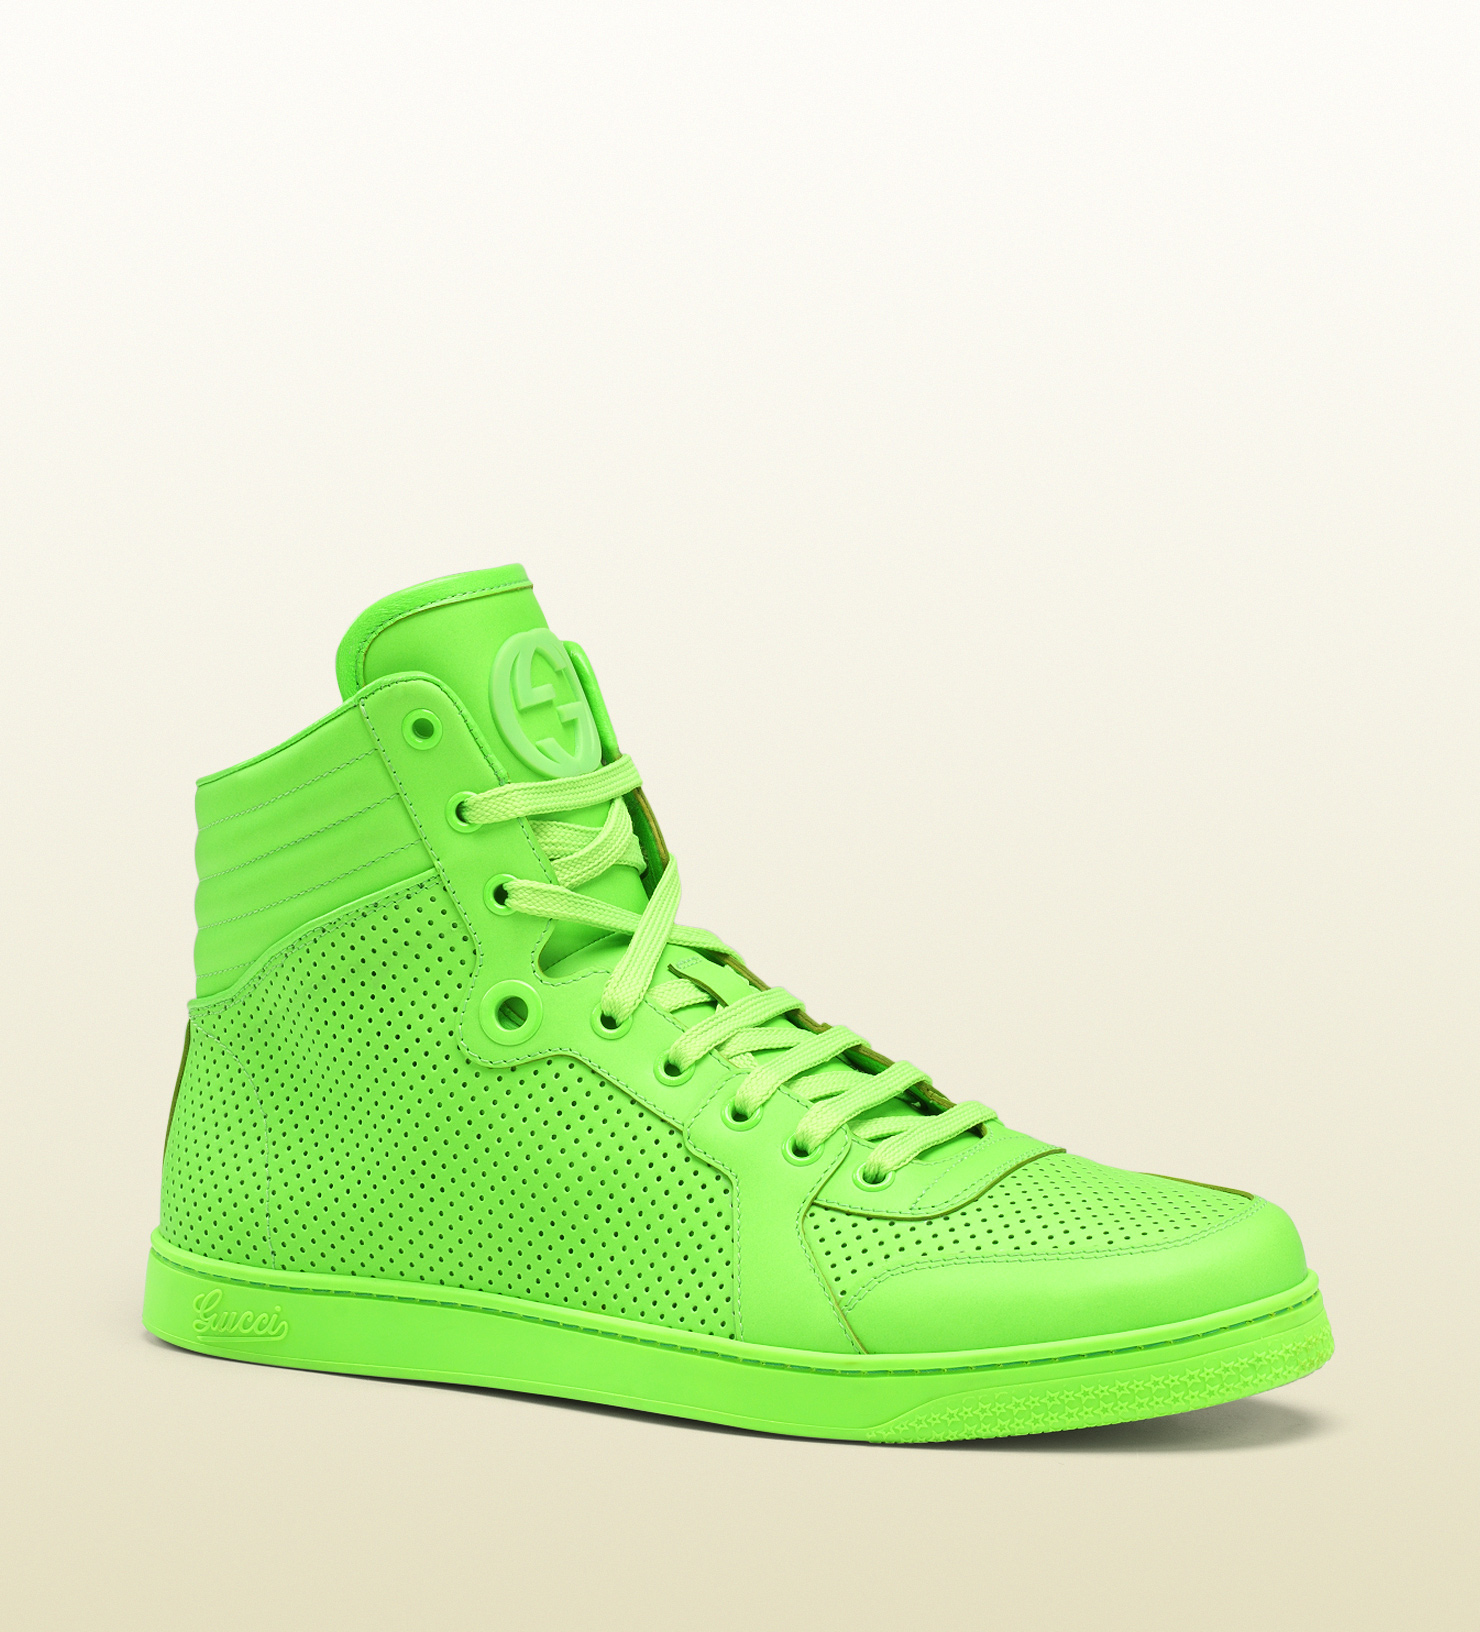 Lyst Gucci Neon Green Leather Hightop Sneaker In Green